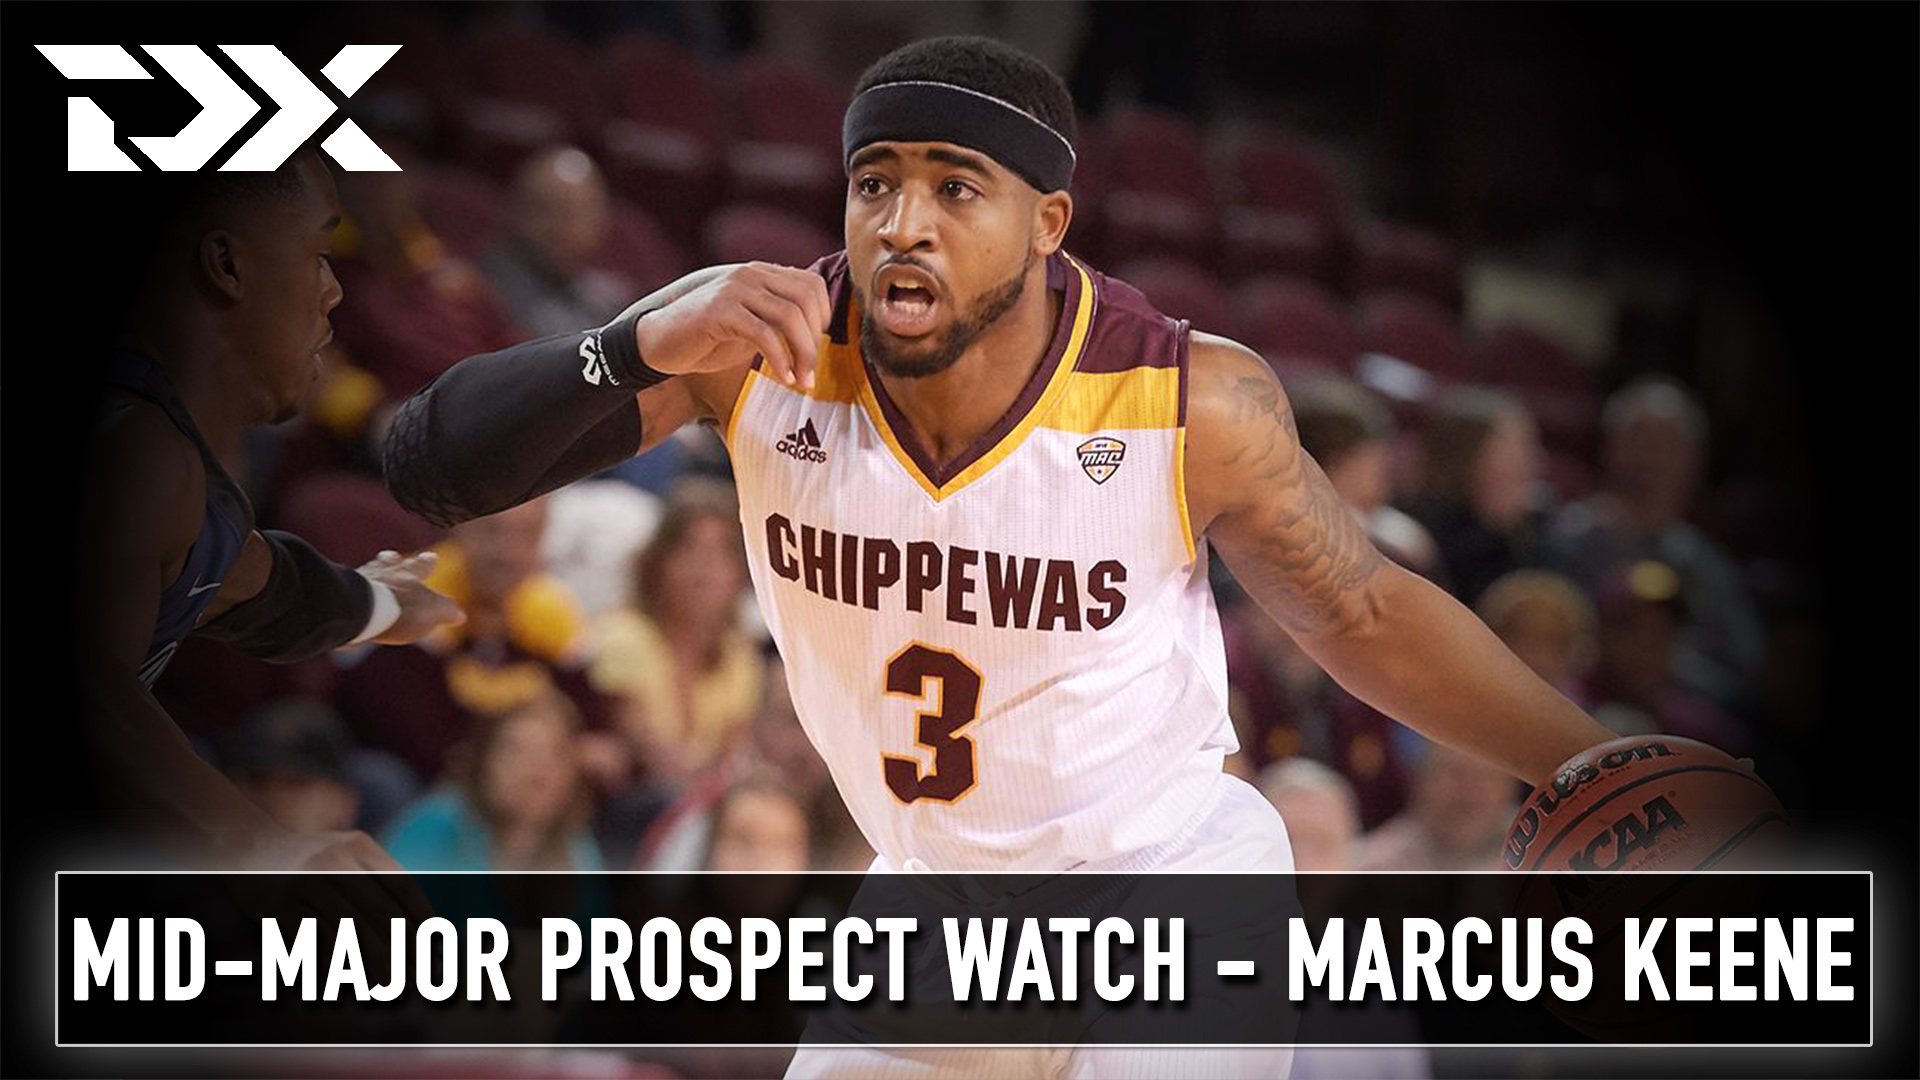 Mid-Major Prospect Watch: Marcus Keene